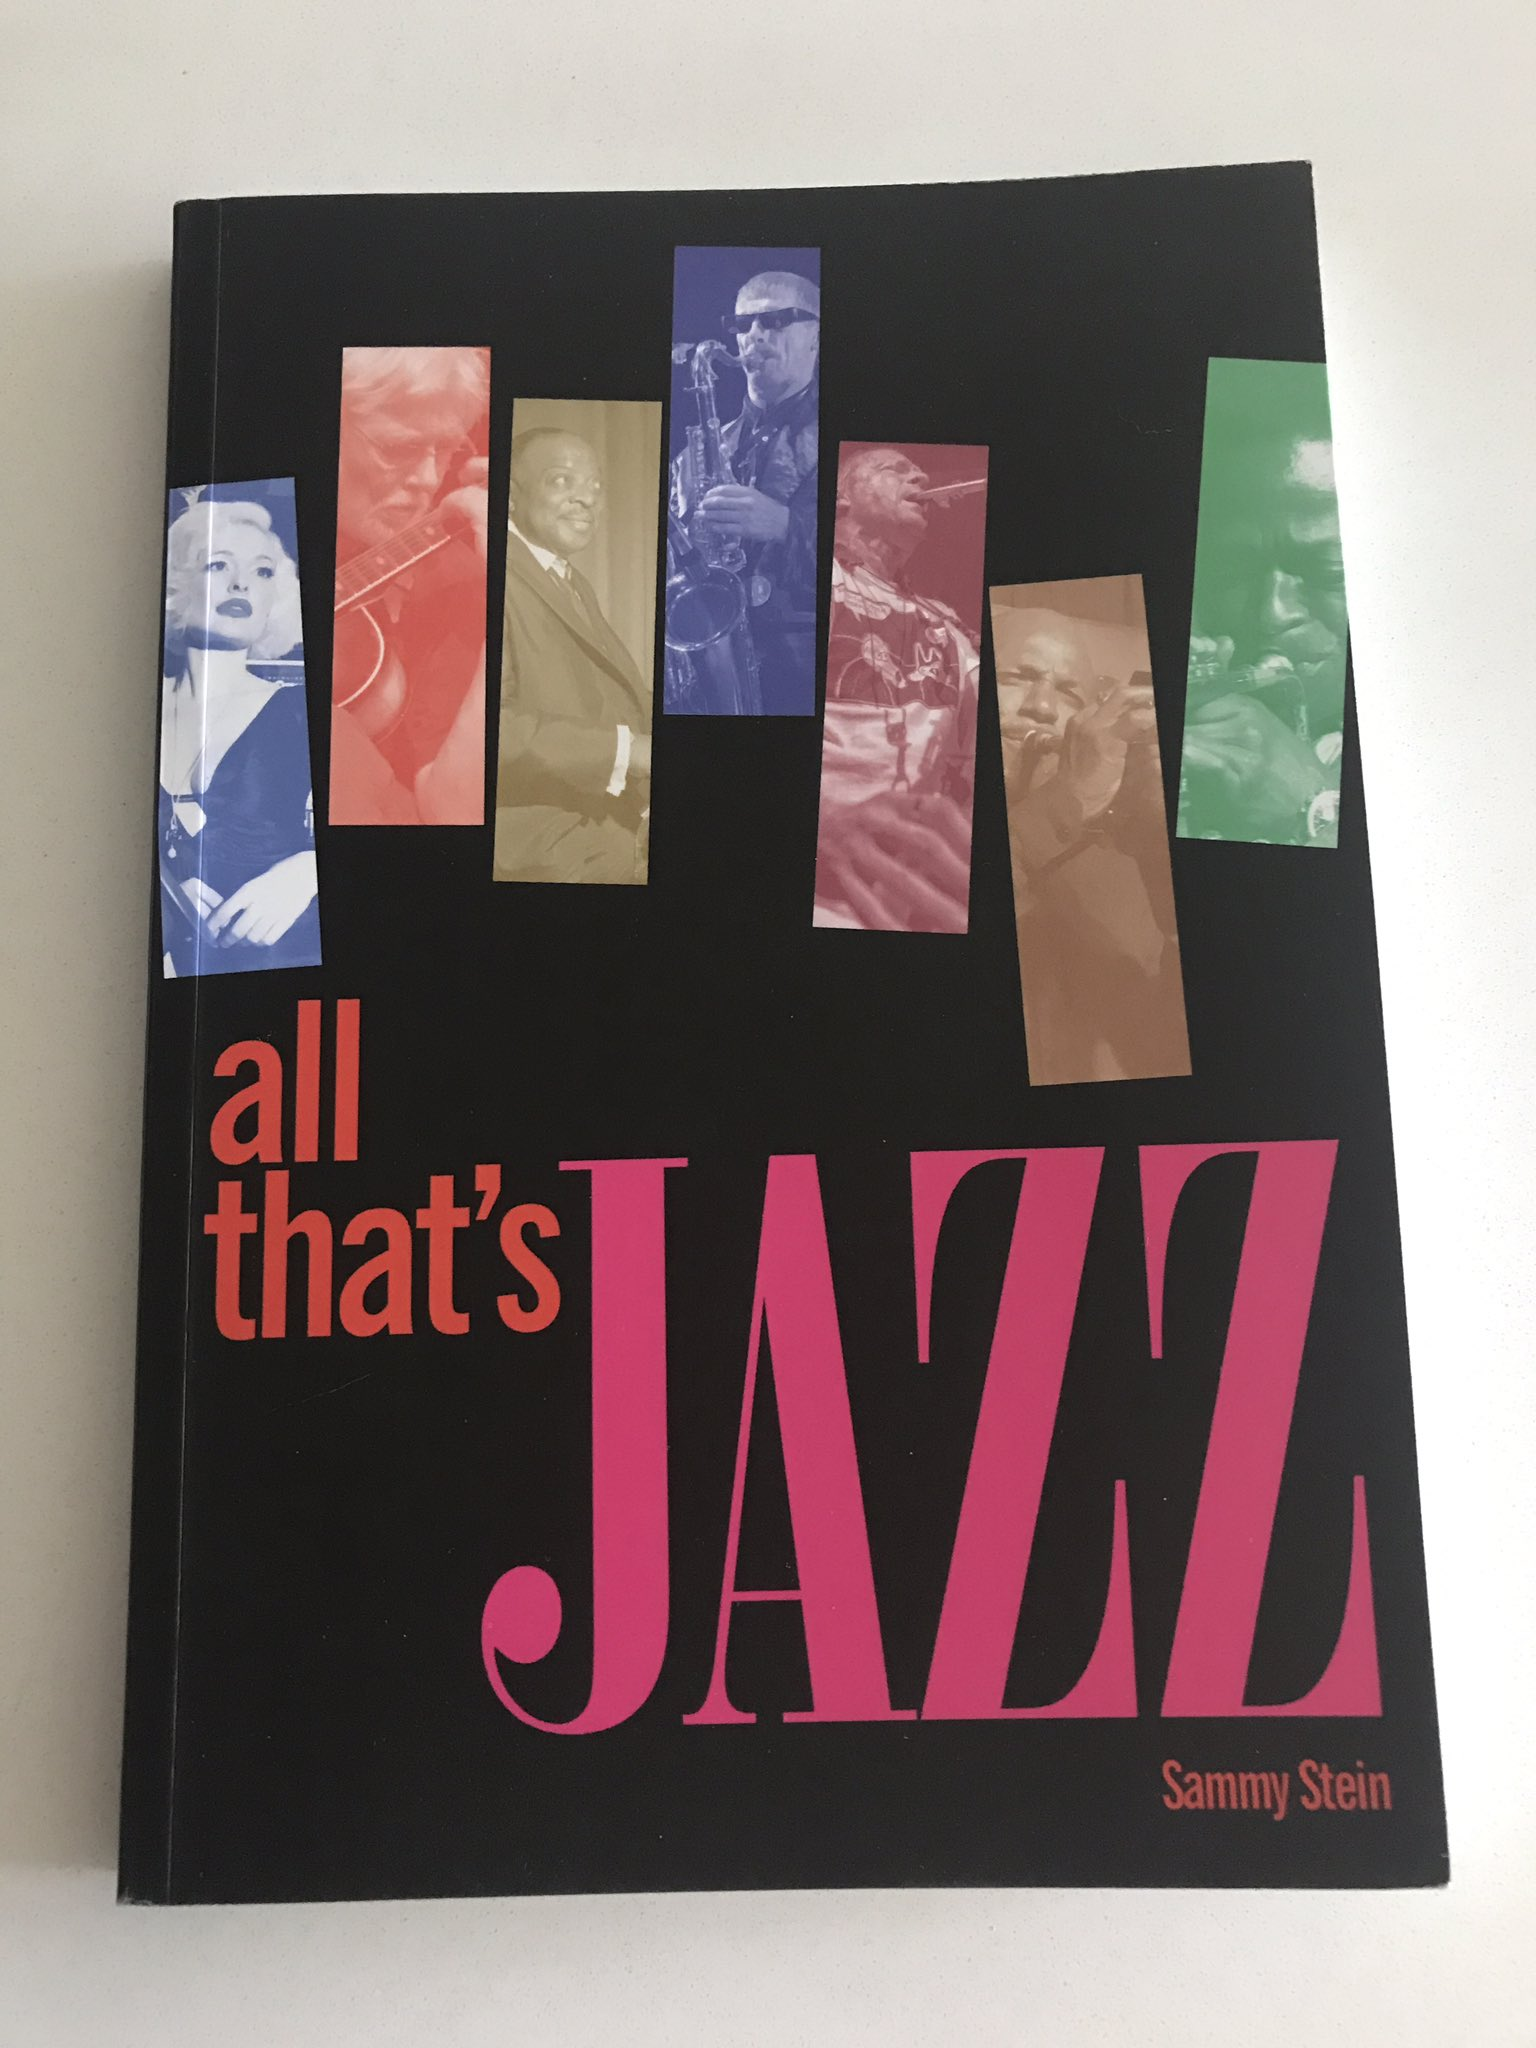 Look what's come in the mail today @SammyStein111 's new book! Can't wait to read it. @Jazzigator @zootswings @loucheliferadio @TheJazzSoul https://t.co/P6QSG2vaQa